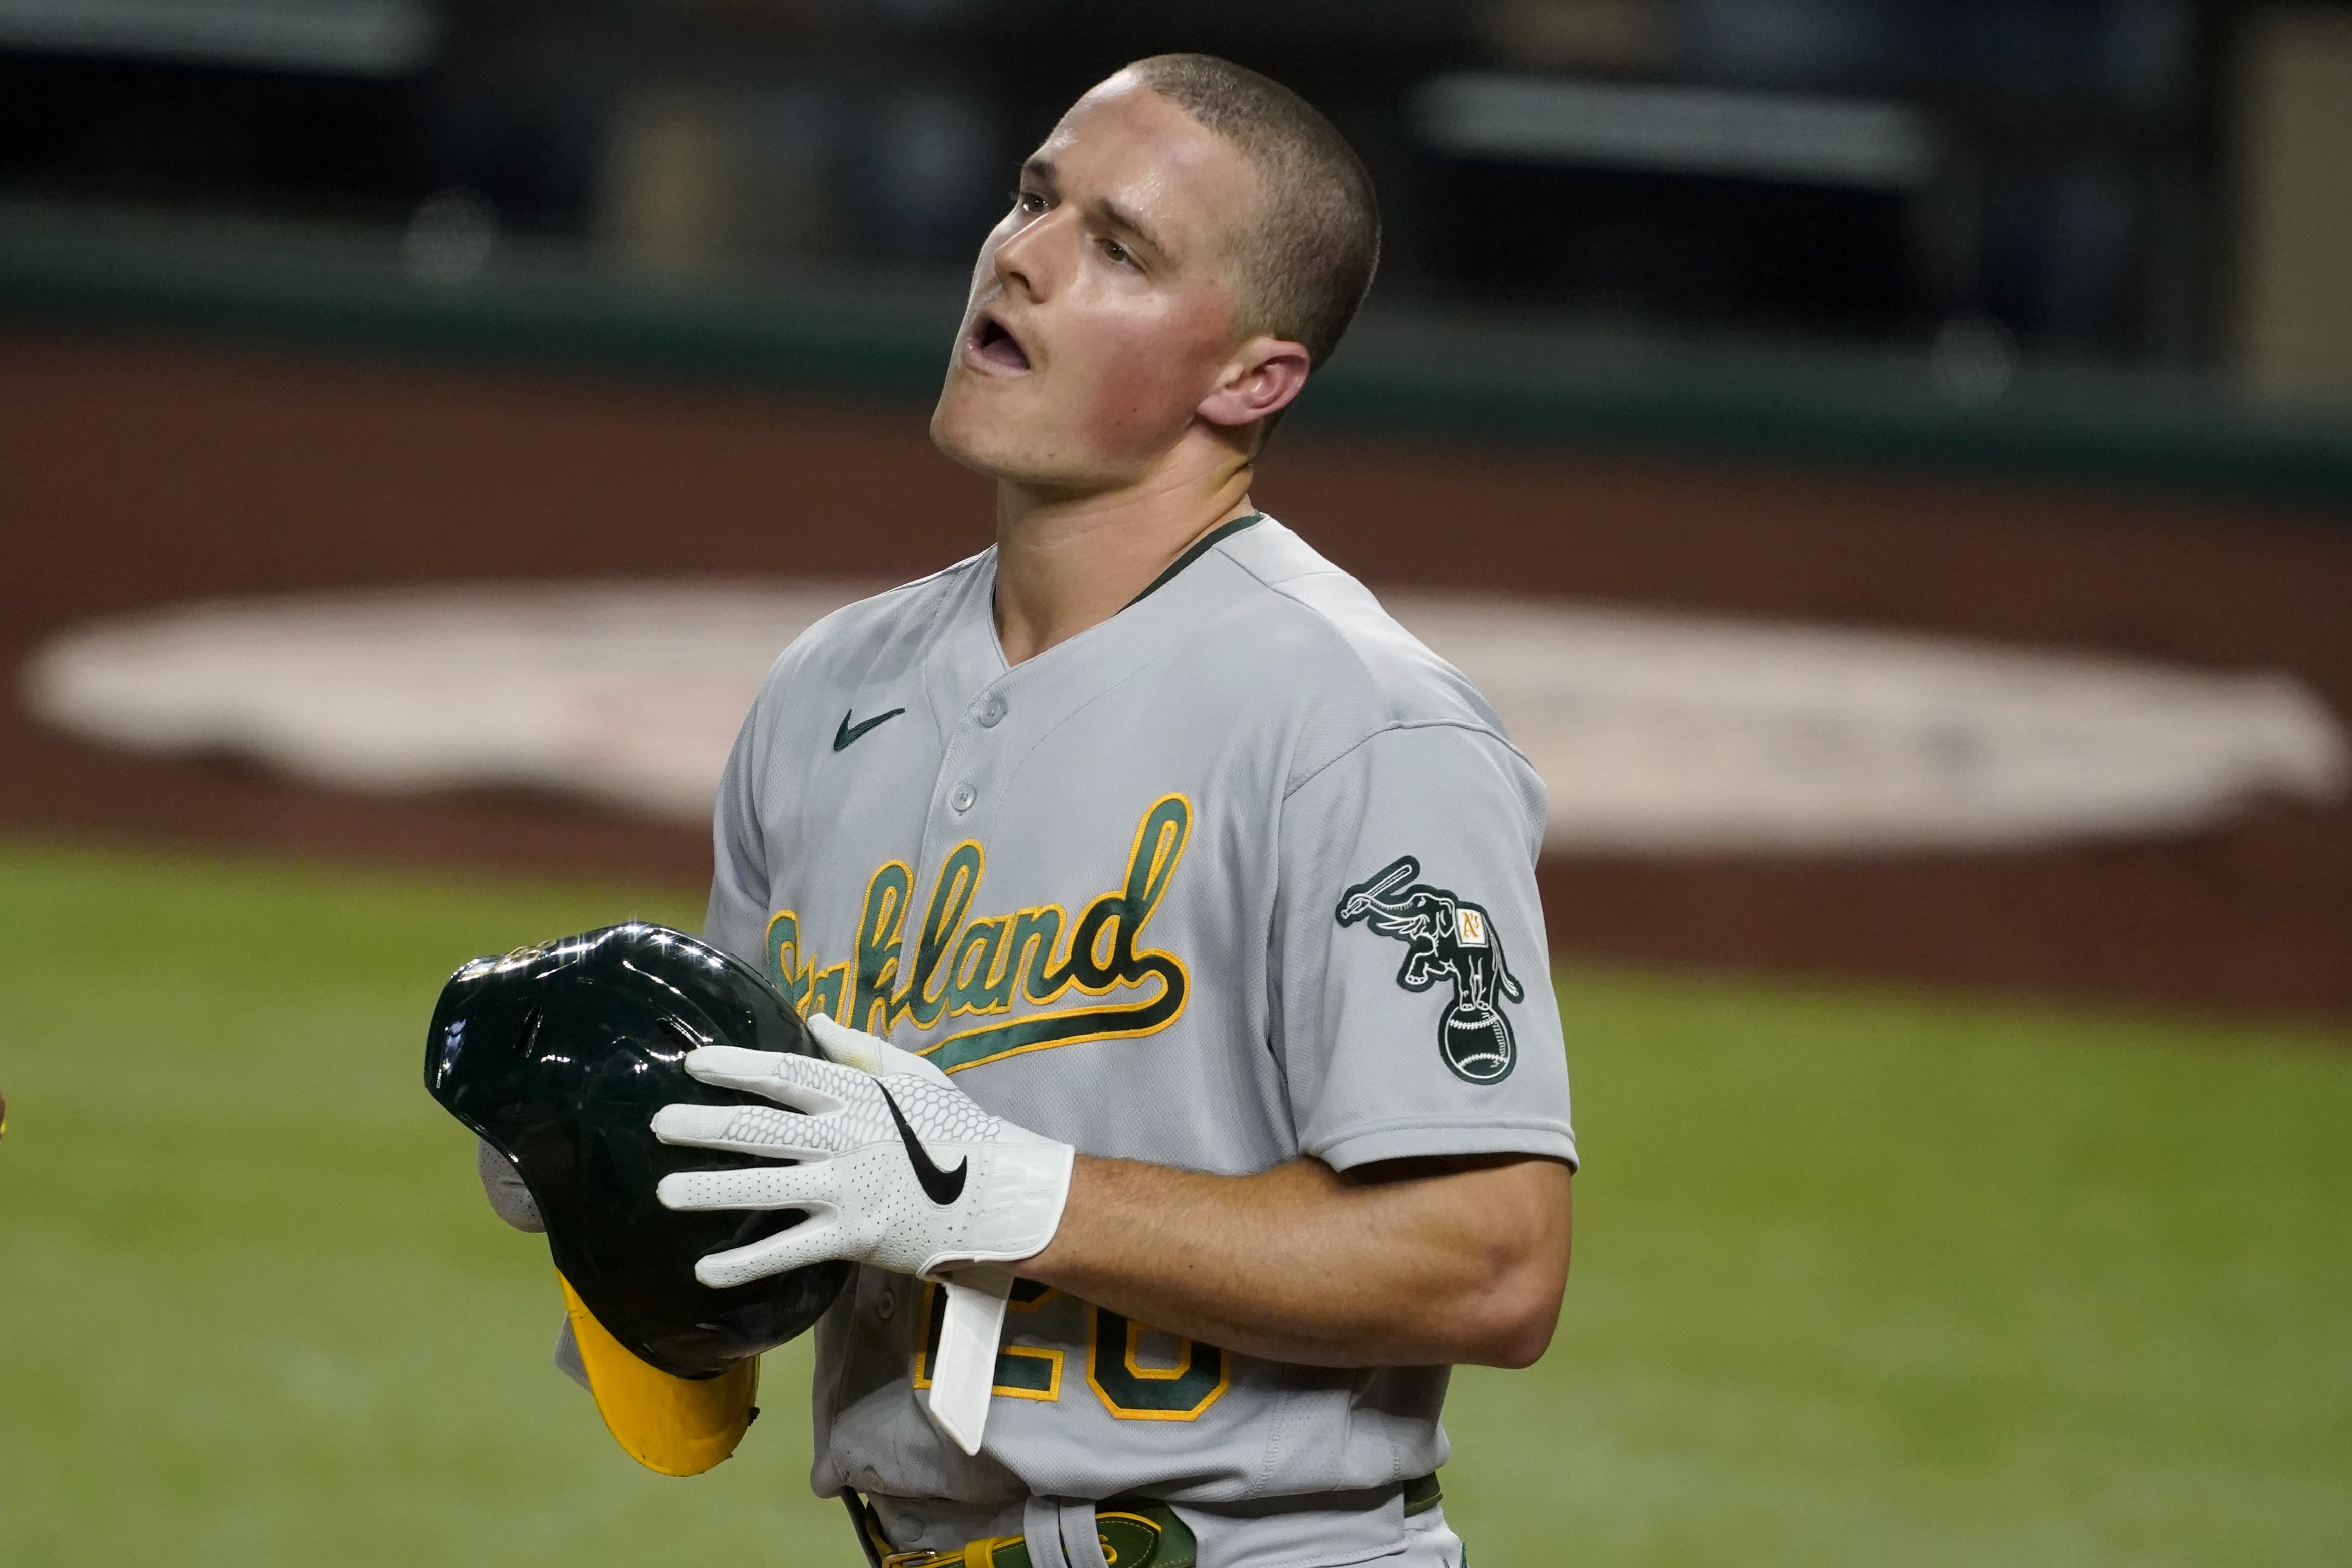 Oakland Athletics' Matt Chapman walks behind the plate after being hit in the head by a pitch from Texas Rangers' Kyle Gibson in the fourth inning of a baseball game in Arlington, Texas, Tuesday, Aug. 25, 2020. Chapman continued playing in the game. (AP Photo/Tony Gutierrez)